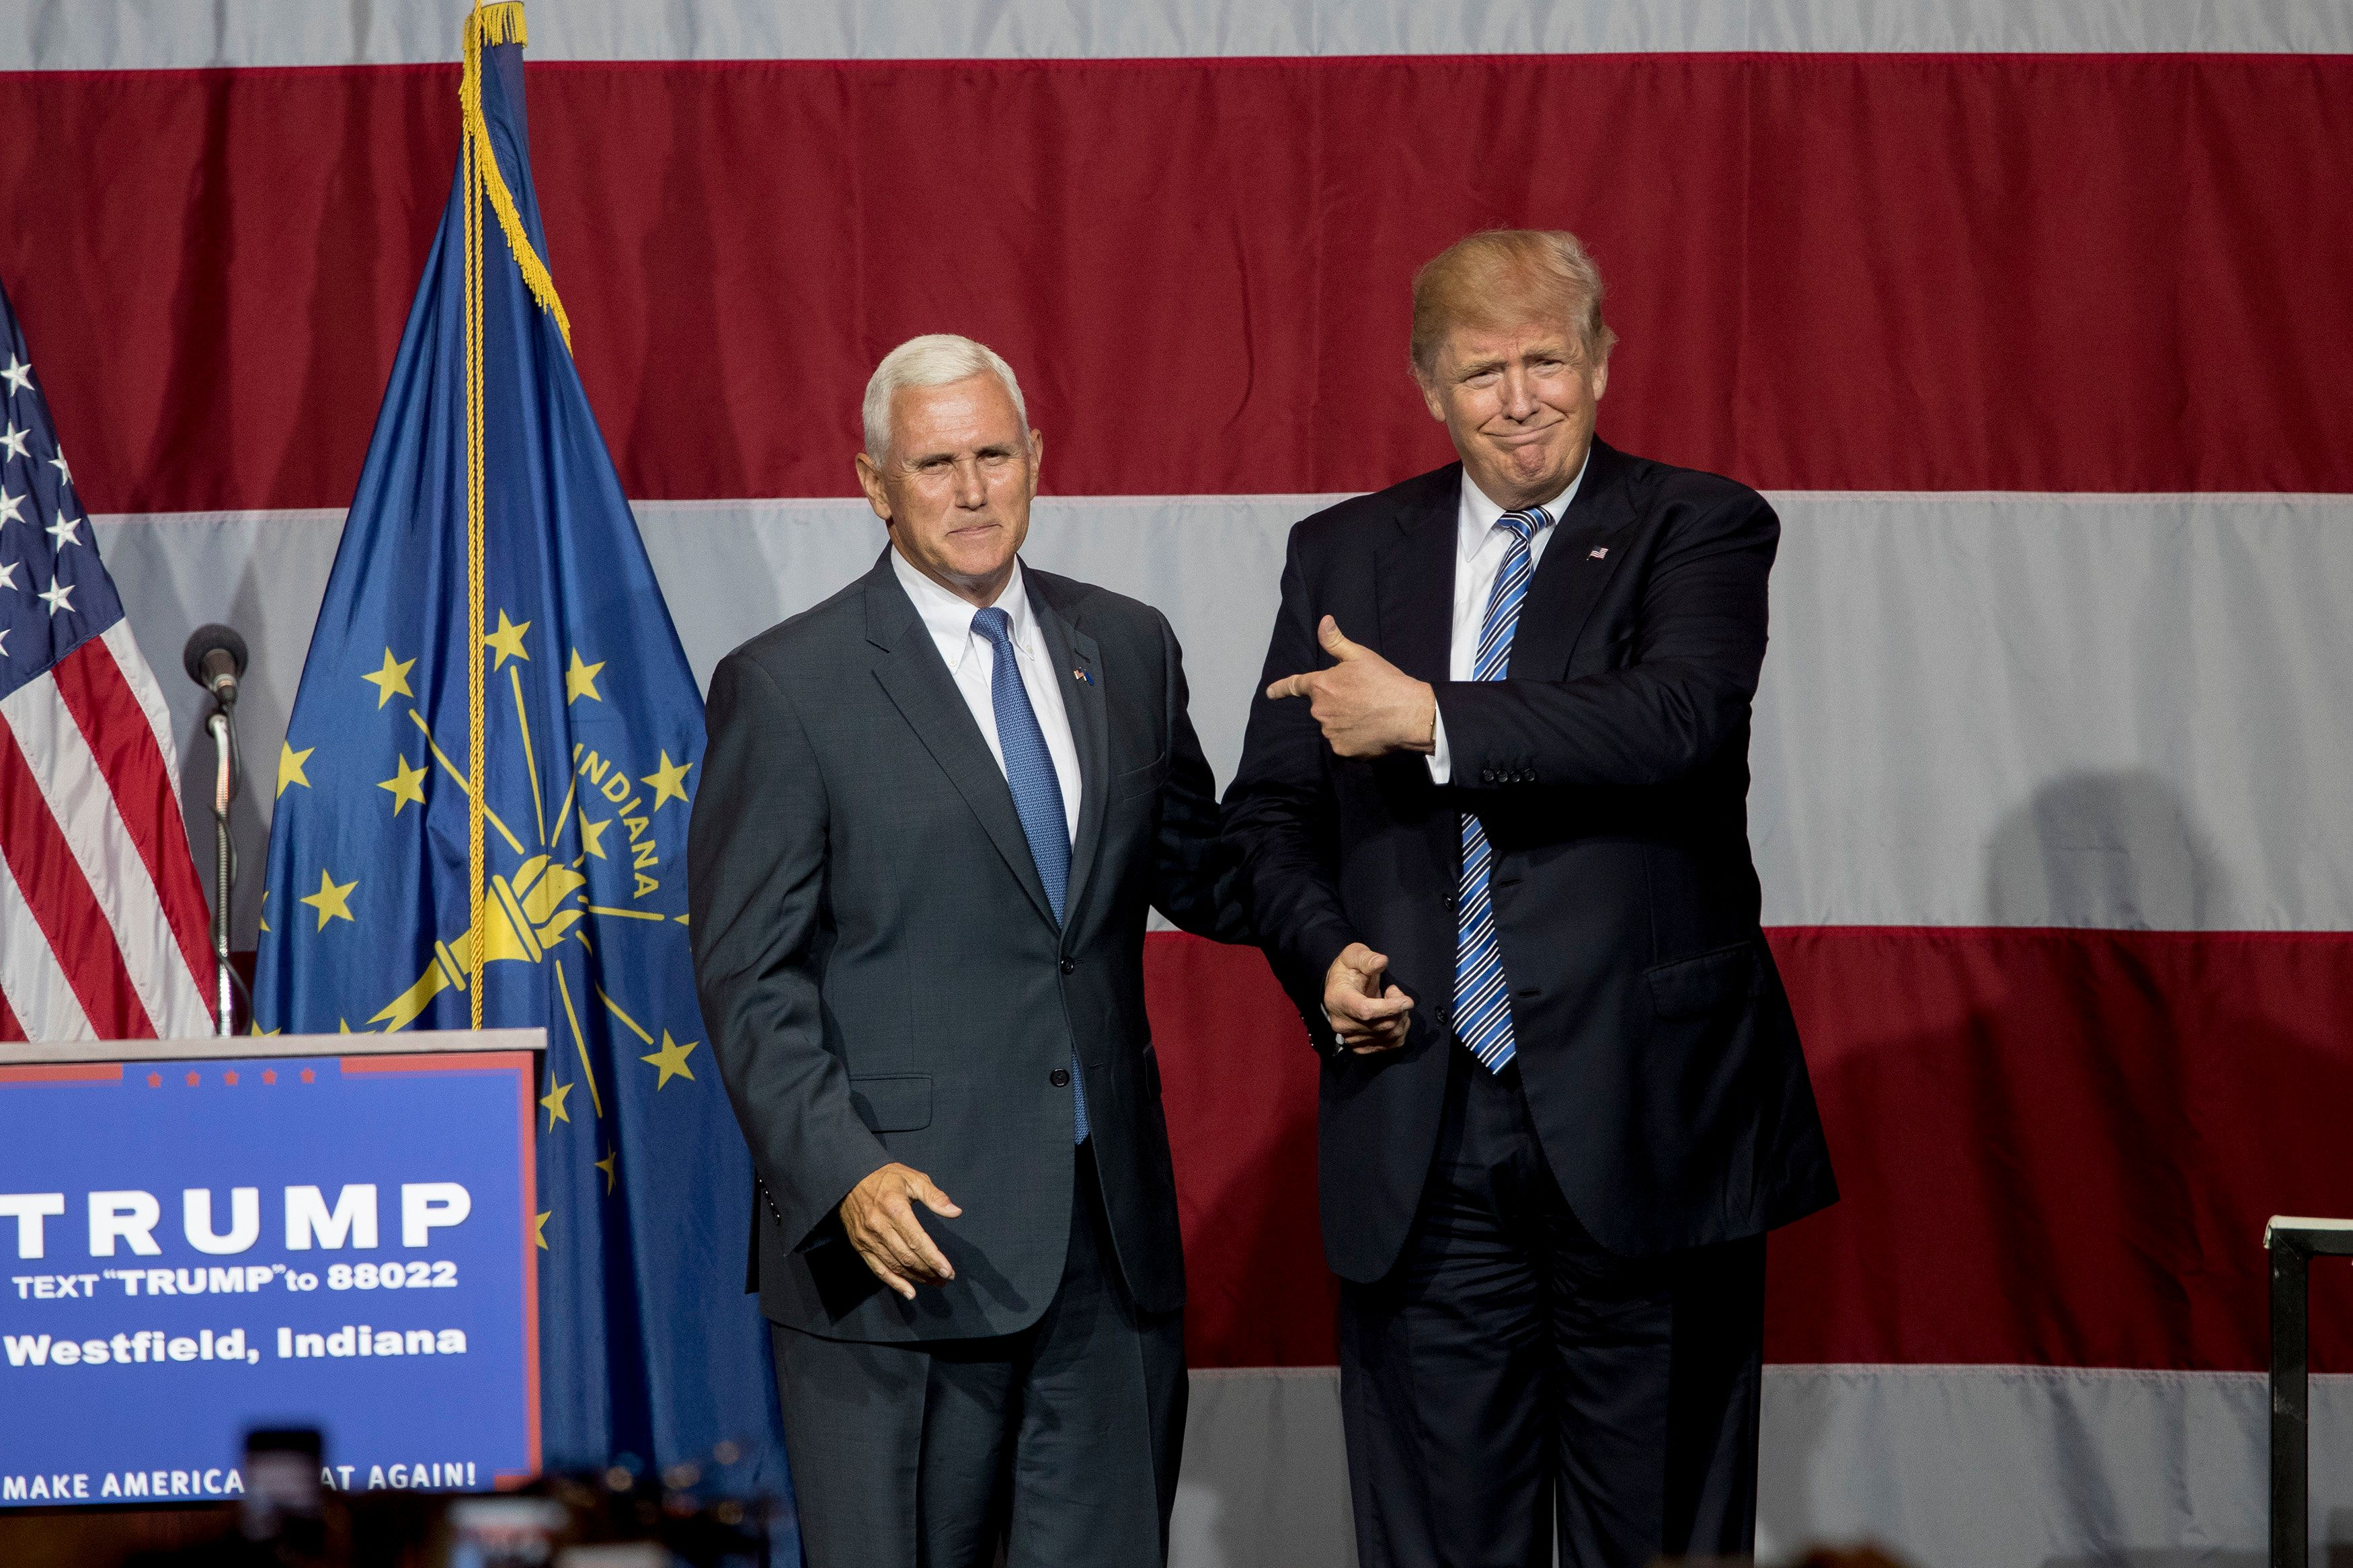 WESTFIELD, IN - JULY 12:   Republican presidential candidate Donald Trump greets Indiana Gov. Mike Pence at the Grand Park Events Center on July 12, 2016 in Westfield, Indiana. Trump is campaigning amid speculation he may select Indiana Gov. Mike Pence as his running mate. (Photo by Aaron P. Bernstein/Getty Images)